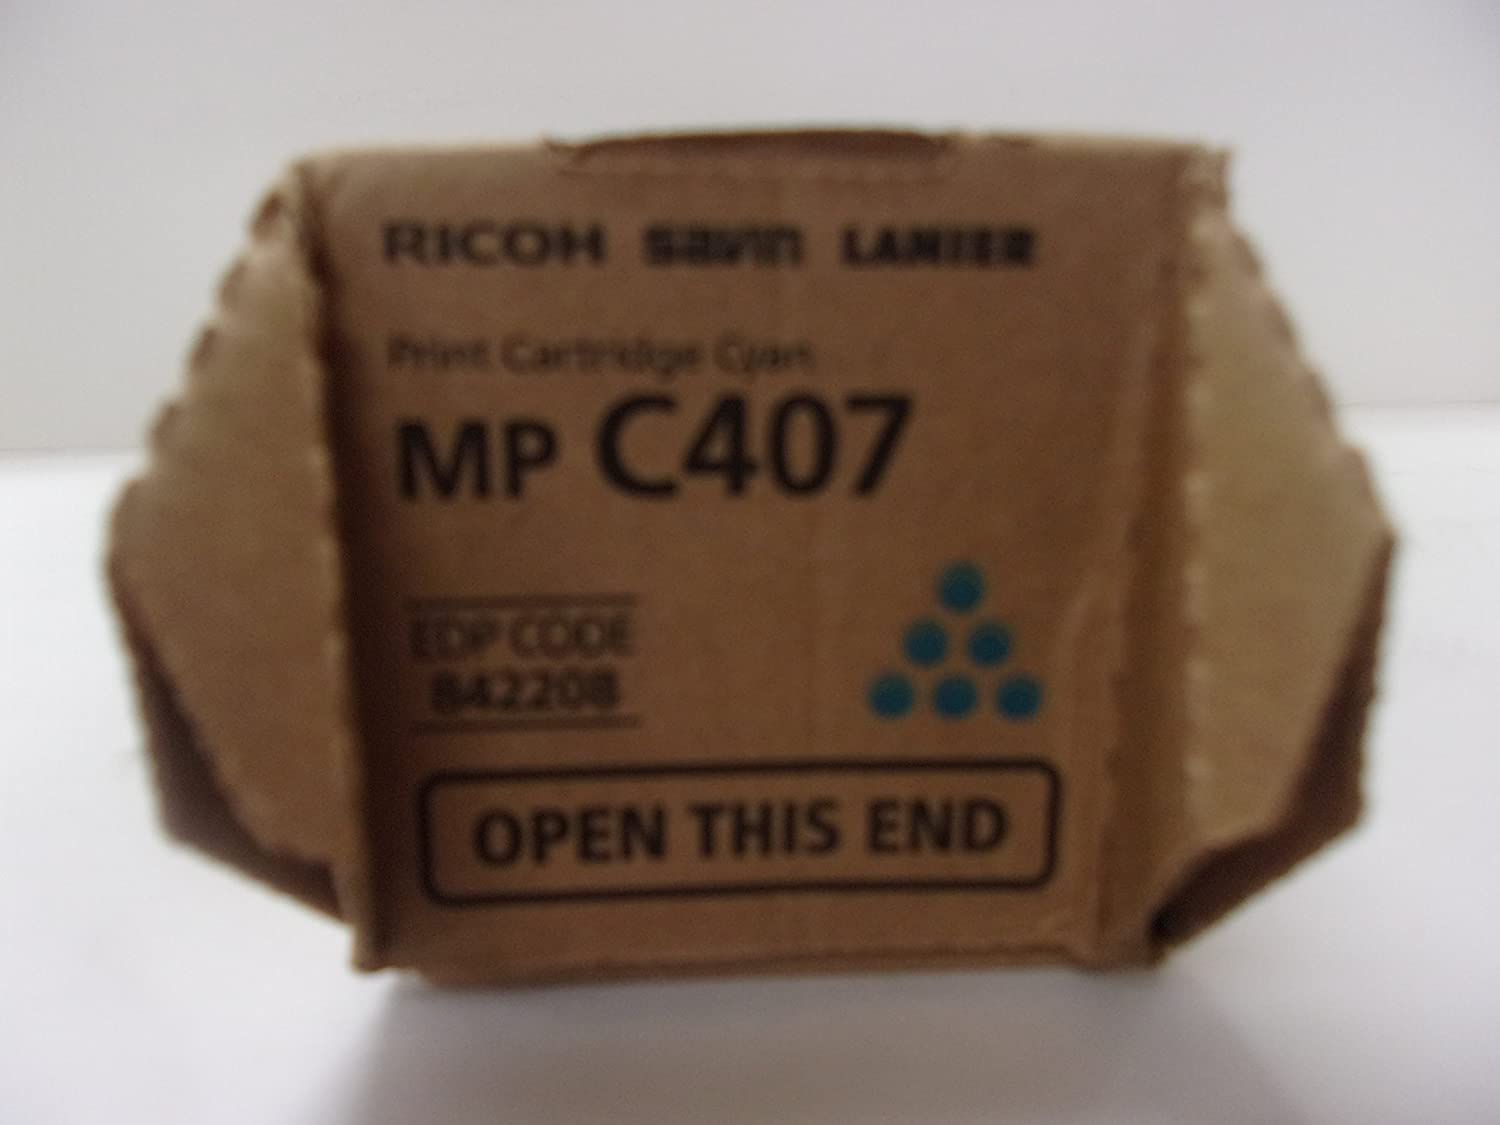 842208 OEM Ricoh Cyan Toner for MP C407